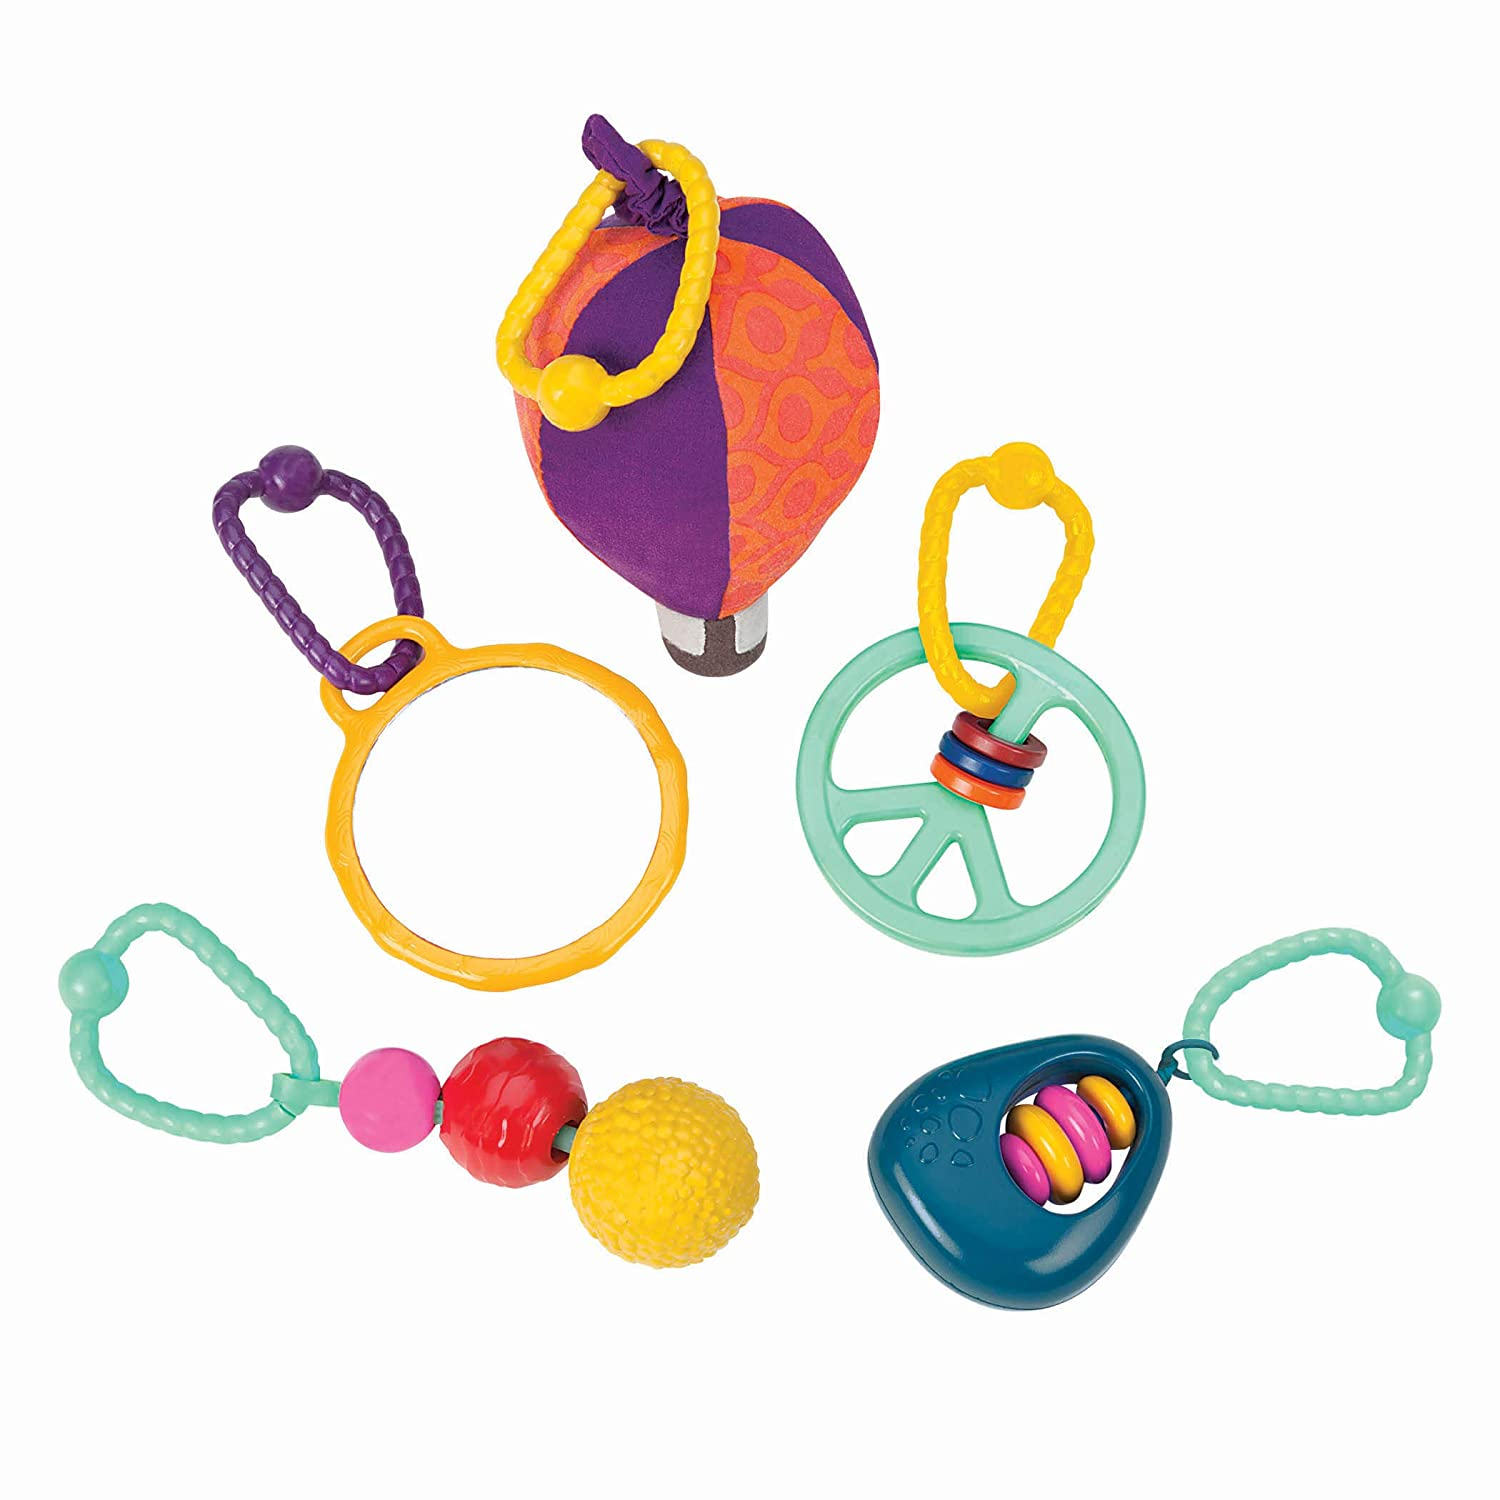 B toys by Battat Wonders Above Activity Quilt Baby Play Mat Gym with 5 Hanging Toys for Newborns